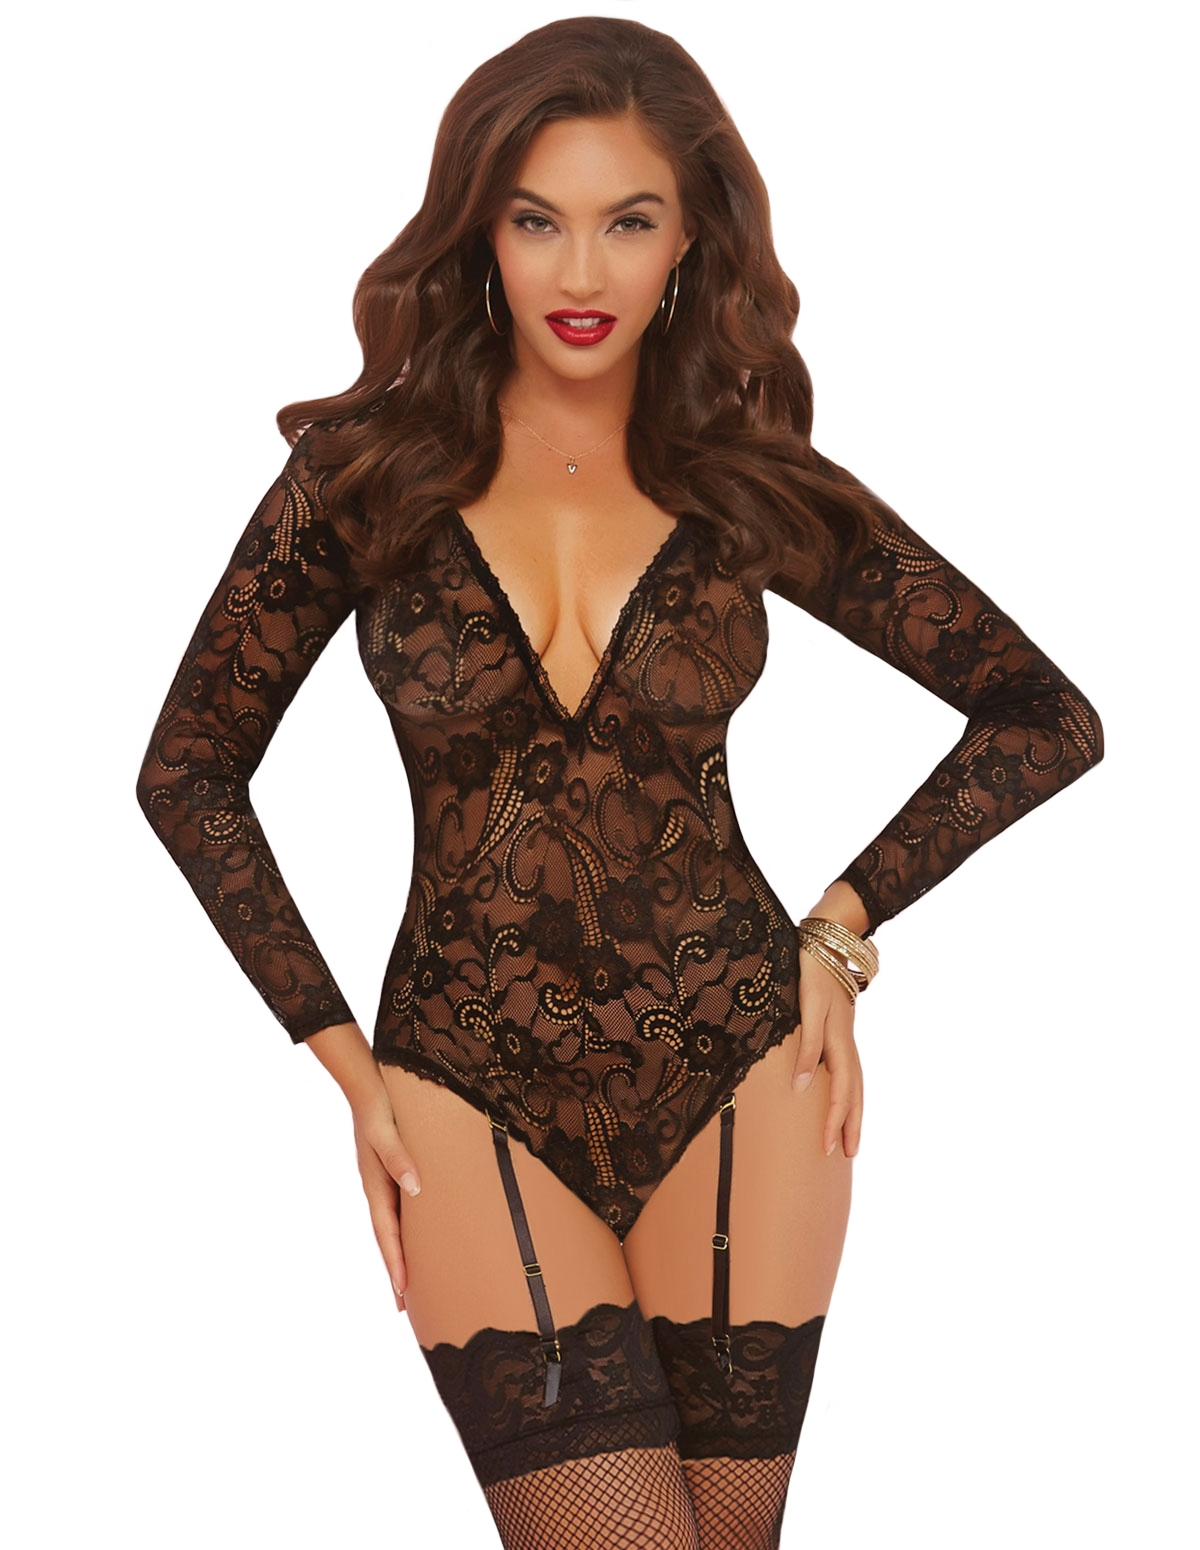 Vintage Lace Long Sleeve Teddy